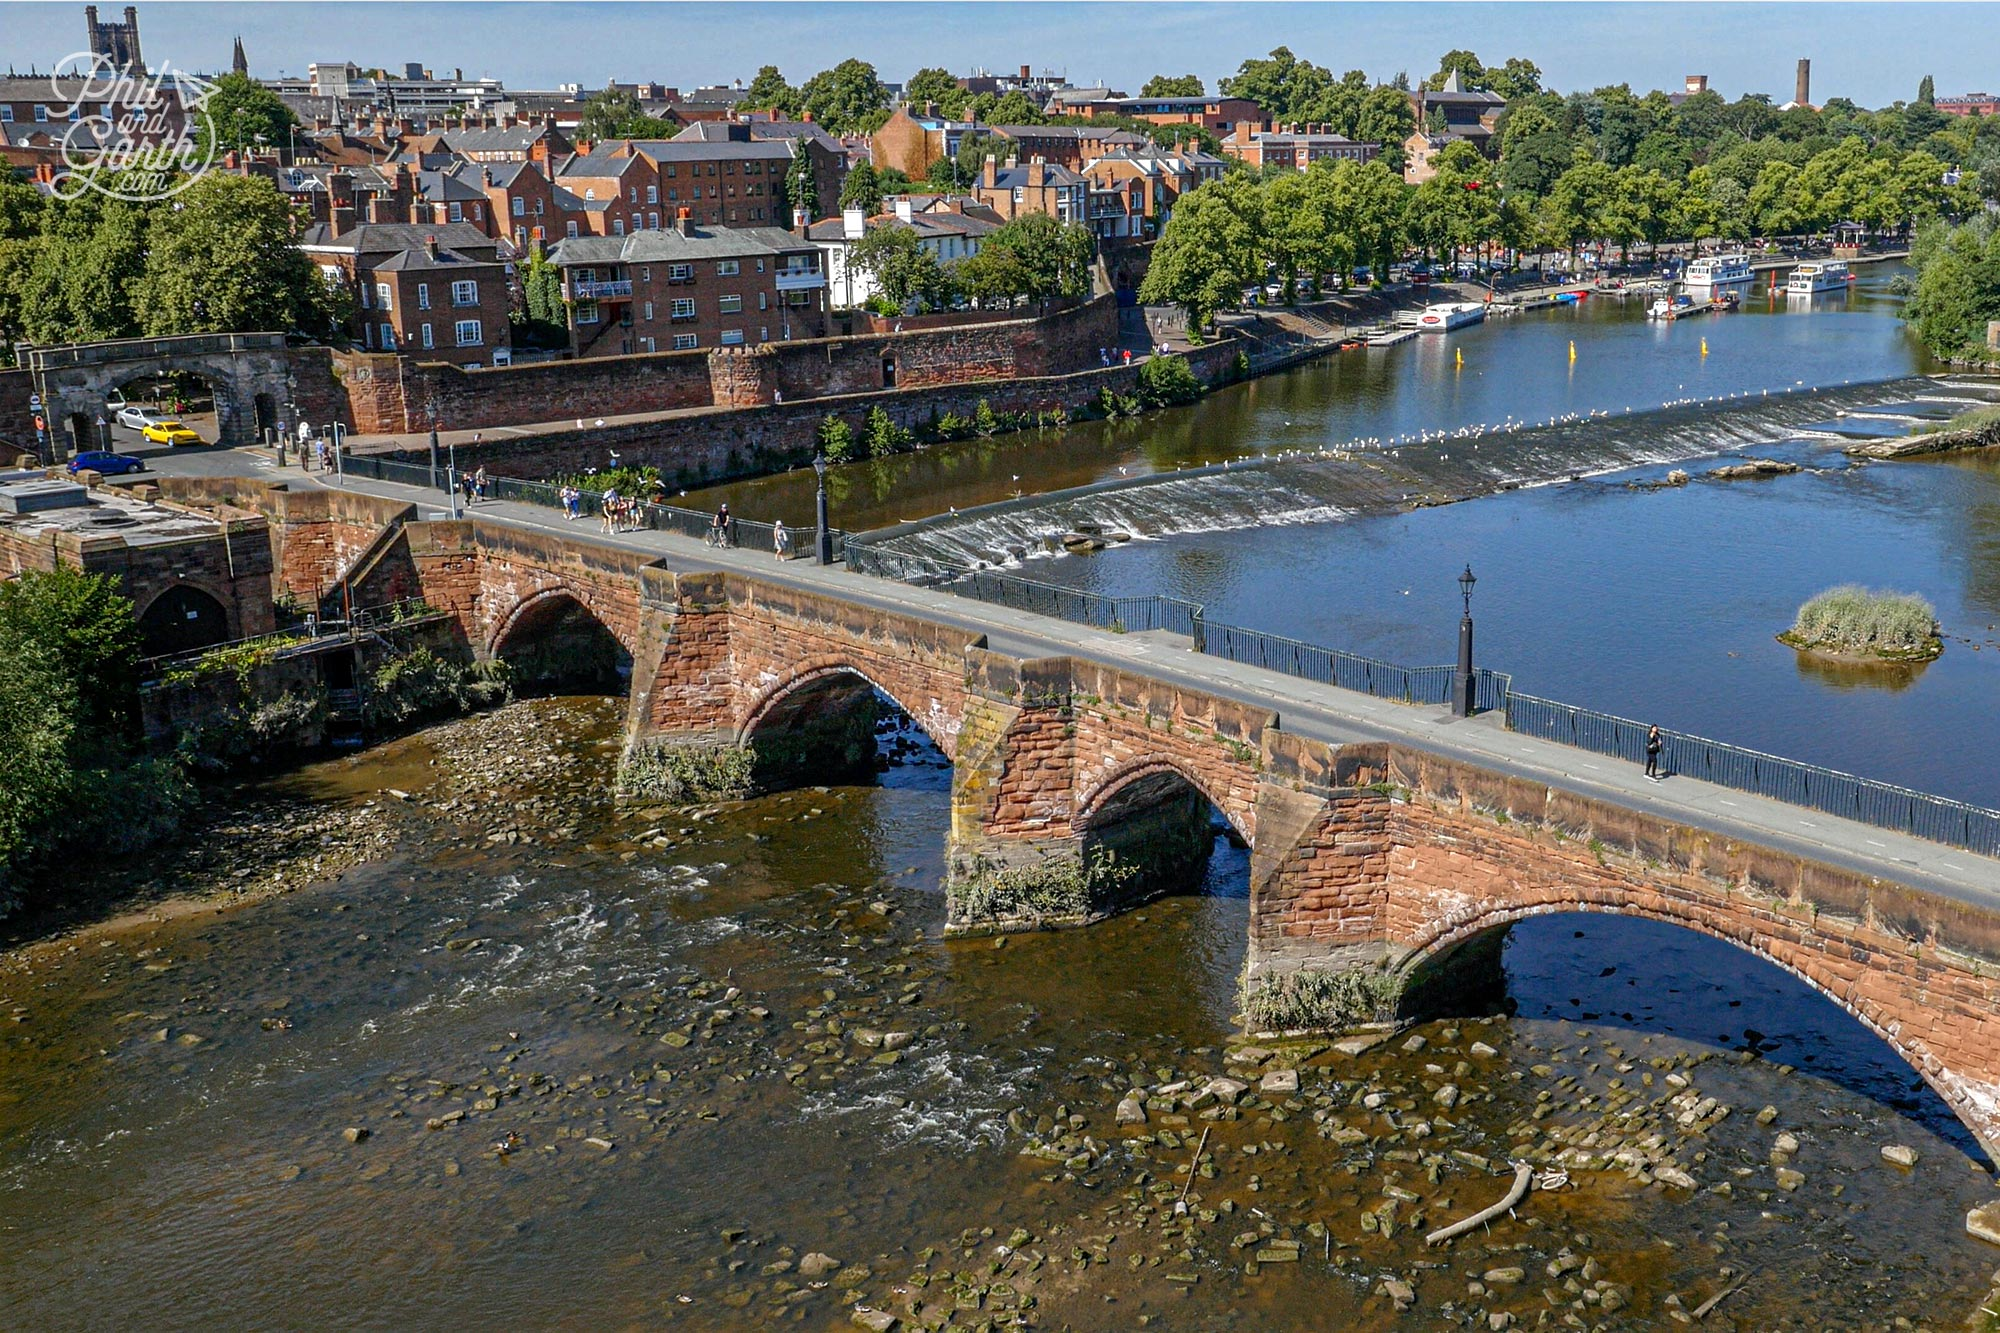 One of Chester's landmarks - The Old Dee Bridge